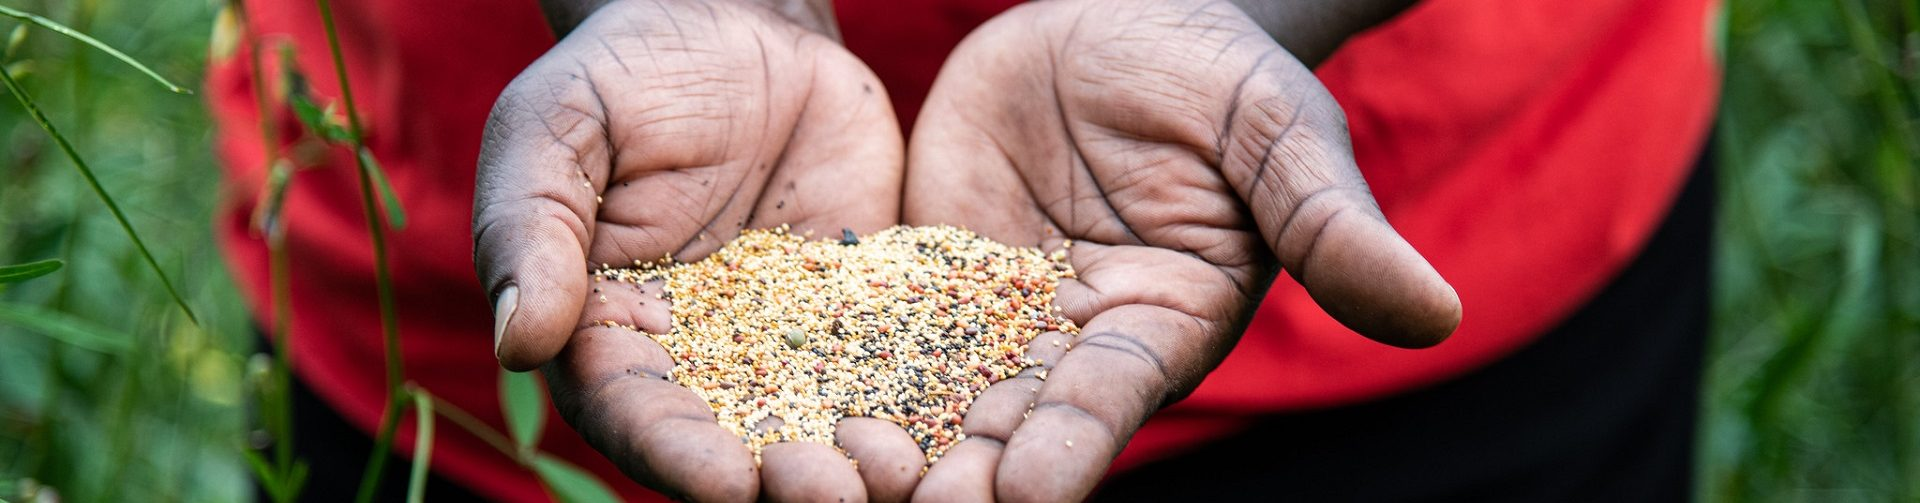 A new model for inclusive seed delivery: Lessons from a pilot in Kenya